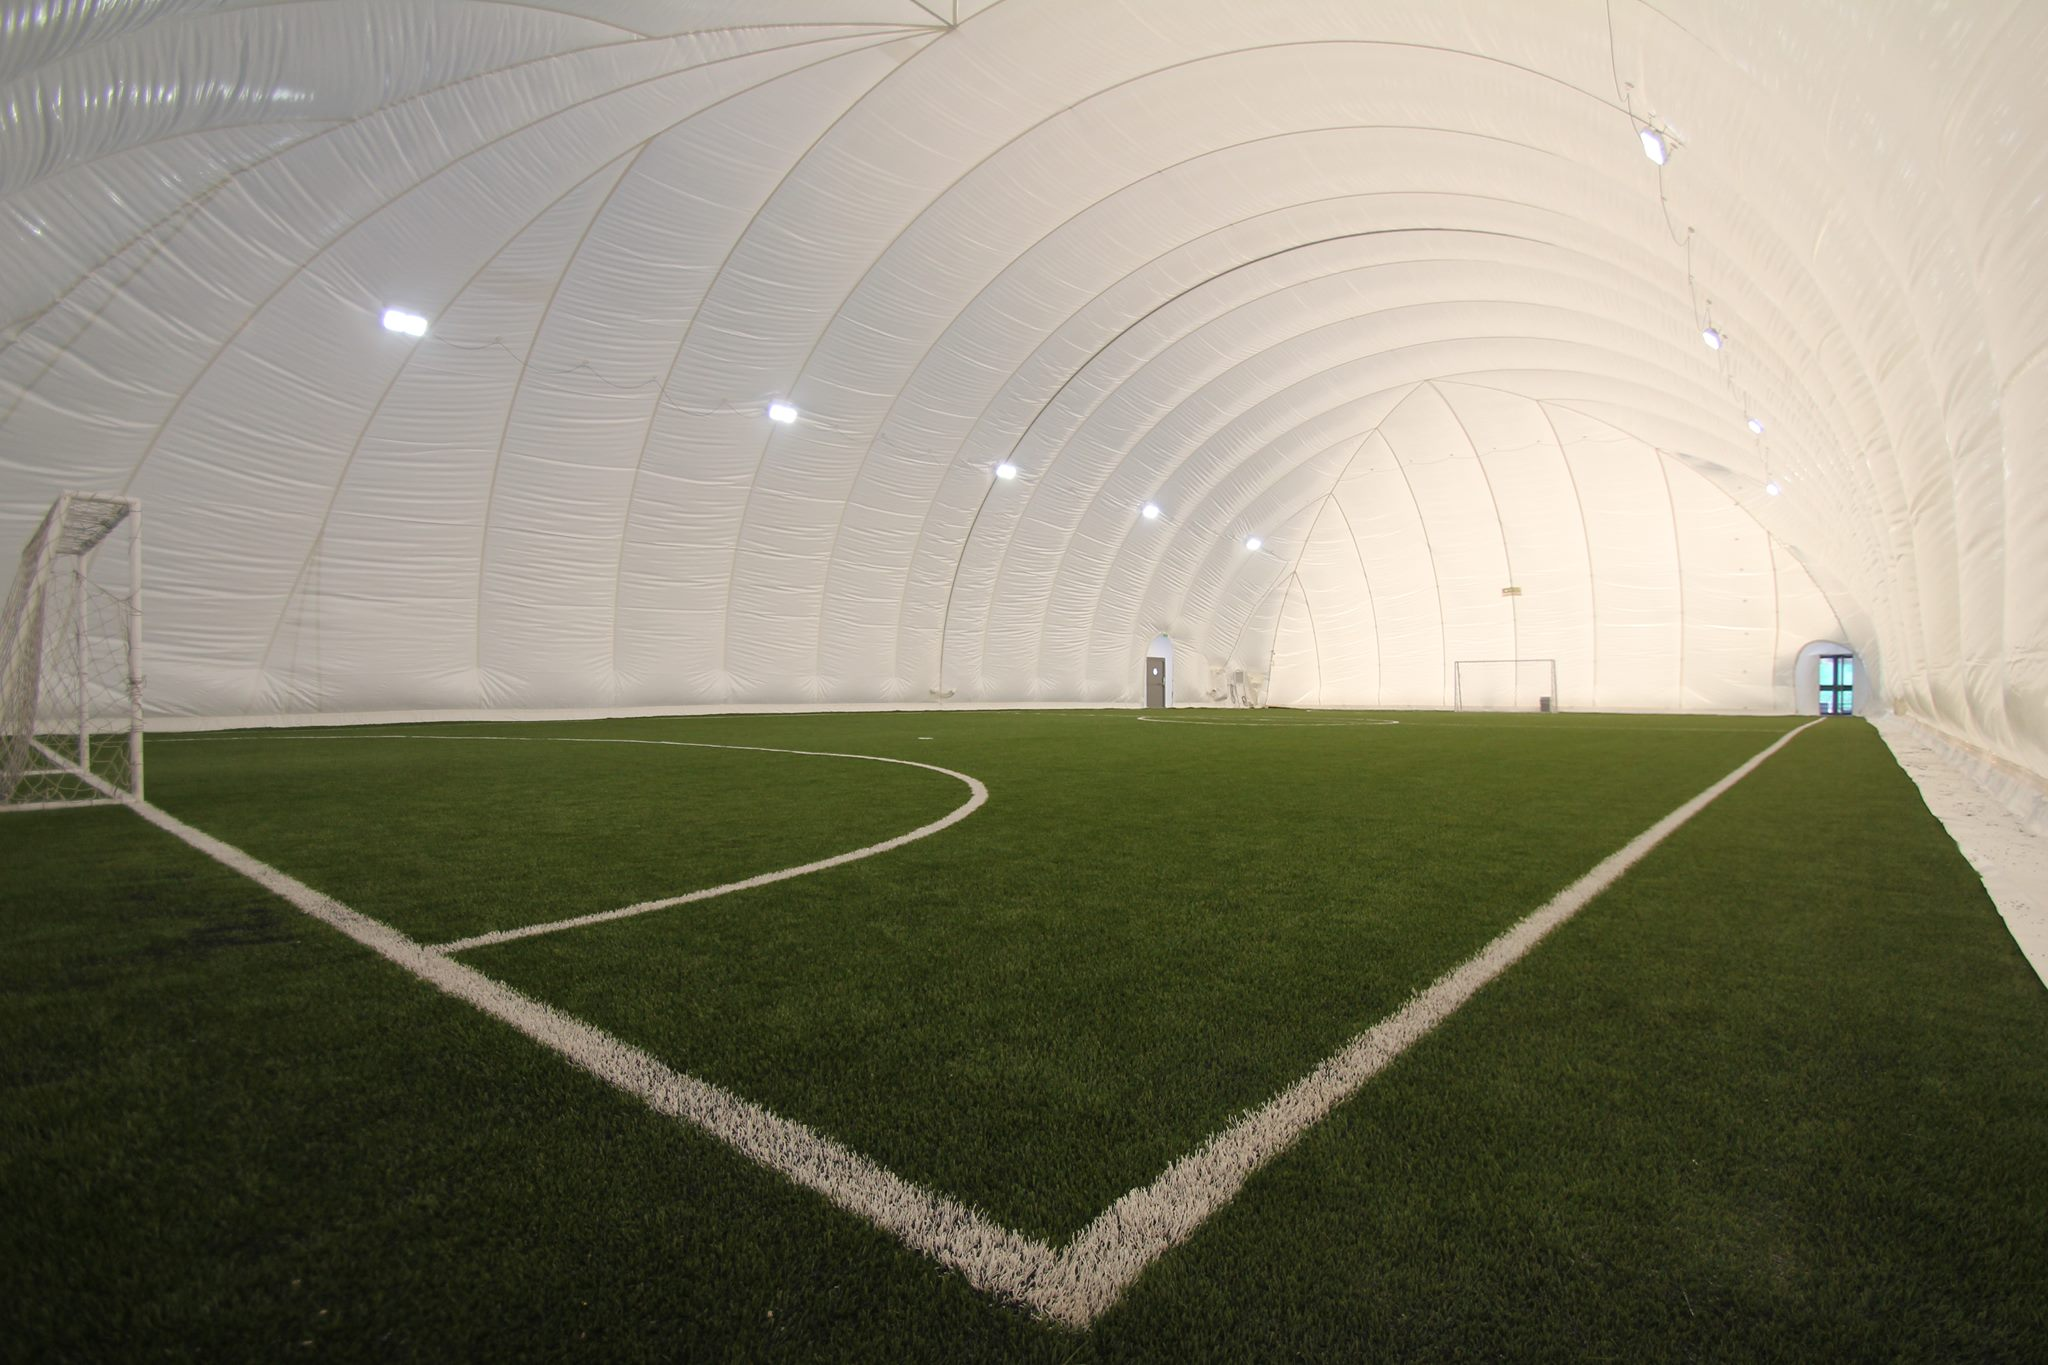 Kick Indoor Football In Winter With Air Dome In Amman 6 Yard